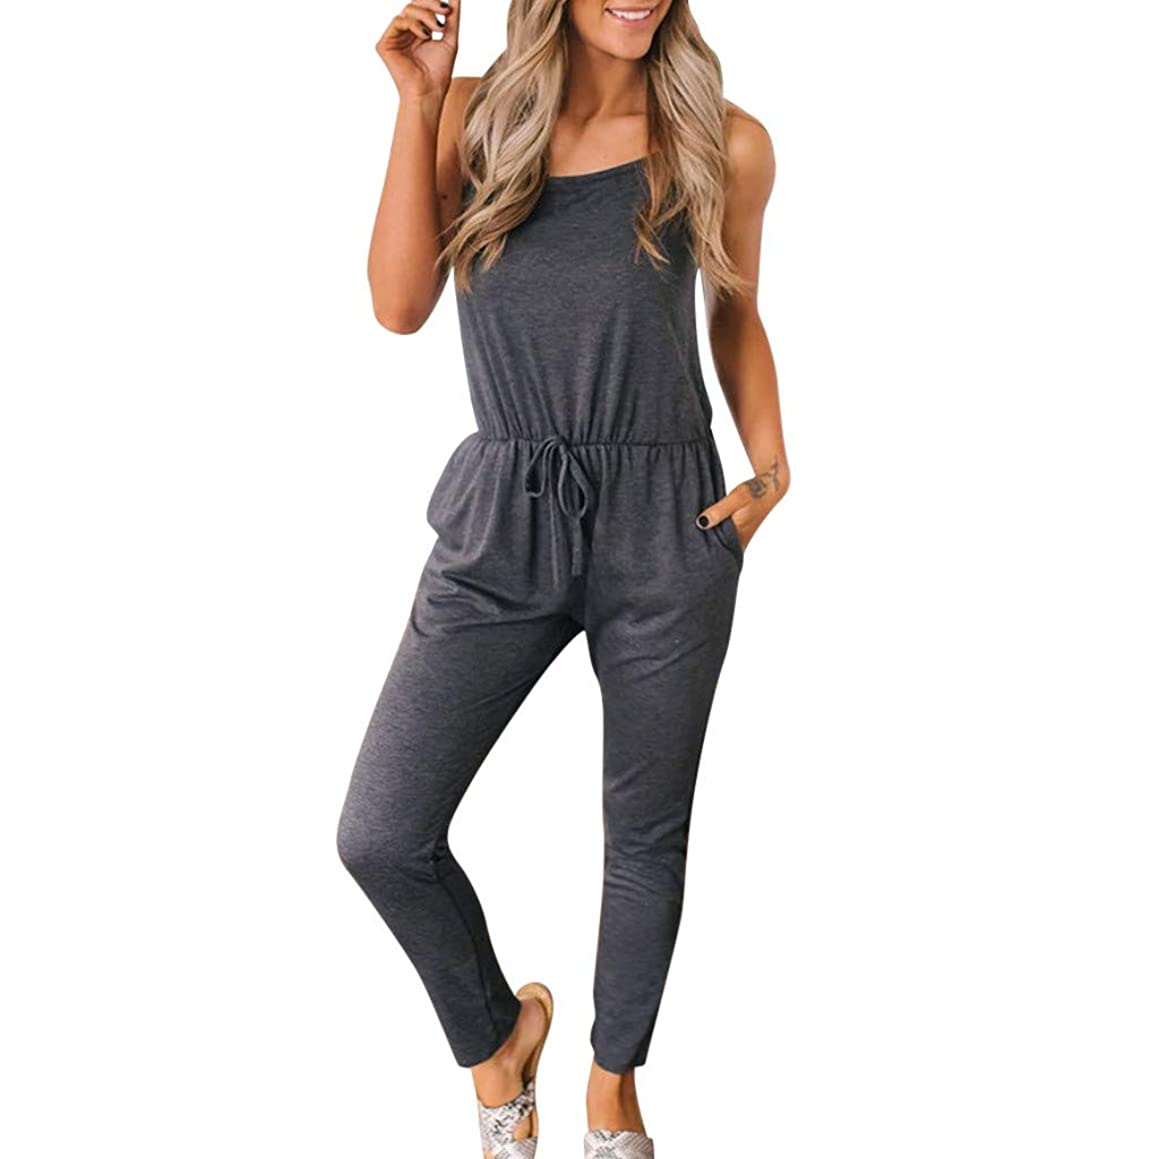 Women's Sleeveless Lace Up O Neck Pockets Casual Sport Solid Jumpsuit Playsuit